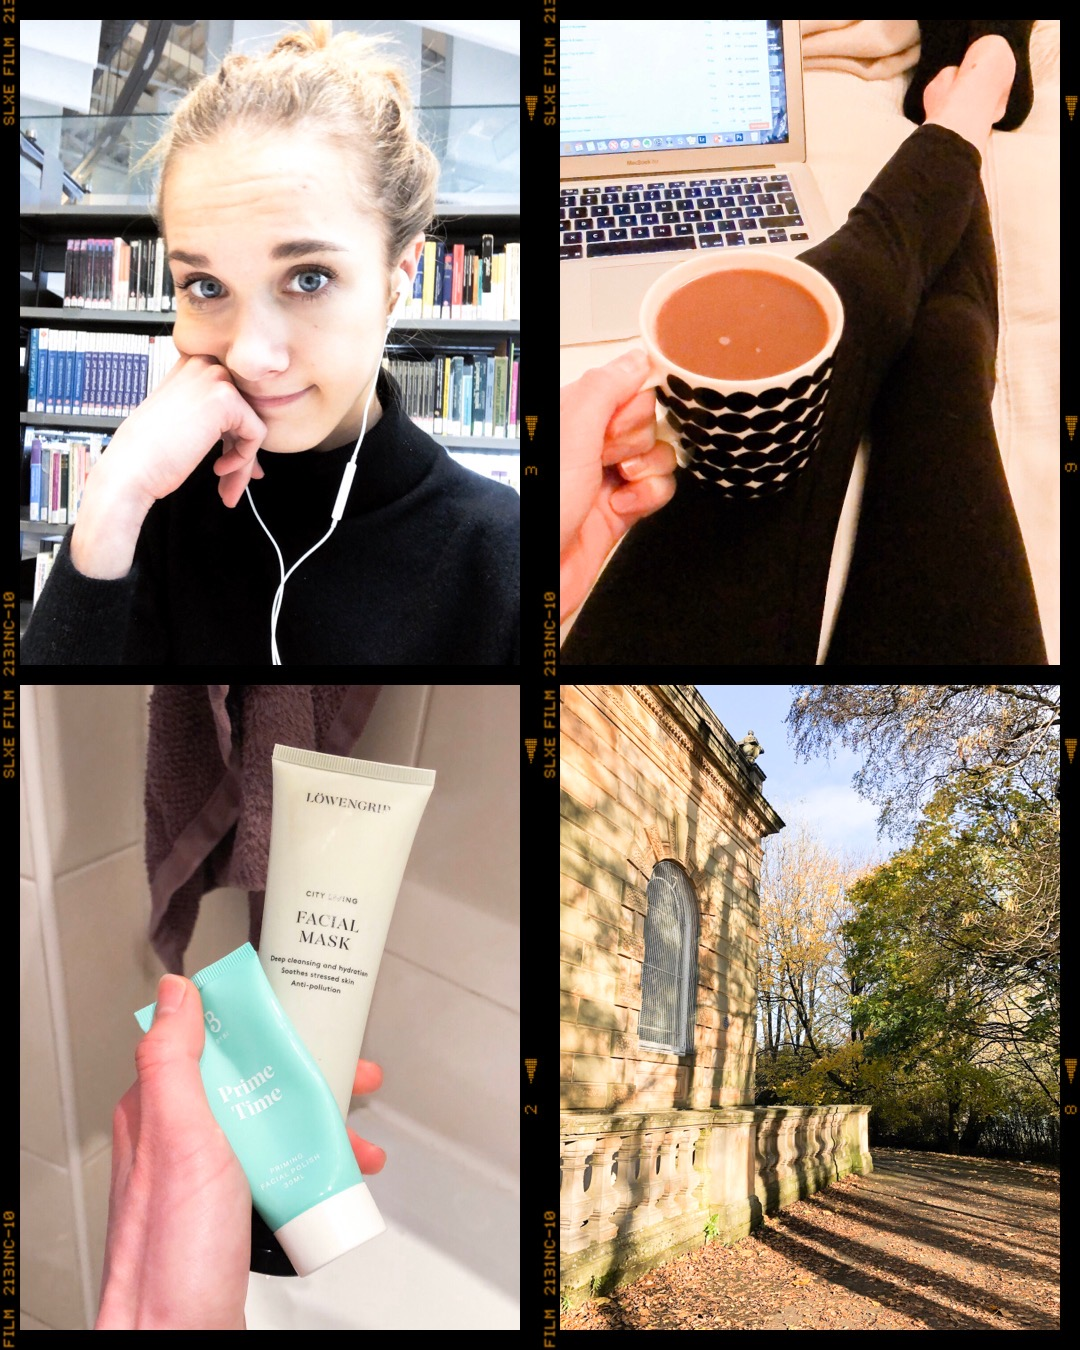 Coffee, BYBI Prime Time, Löwengrip City Living Facial Mask, Autumn sunshine